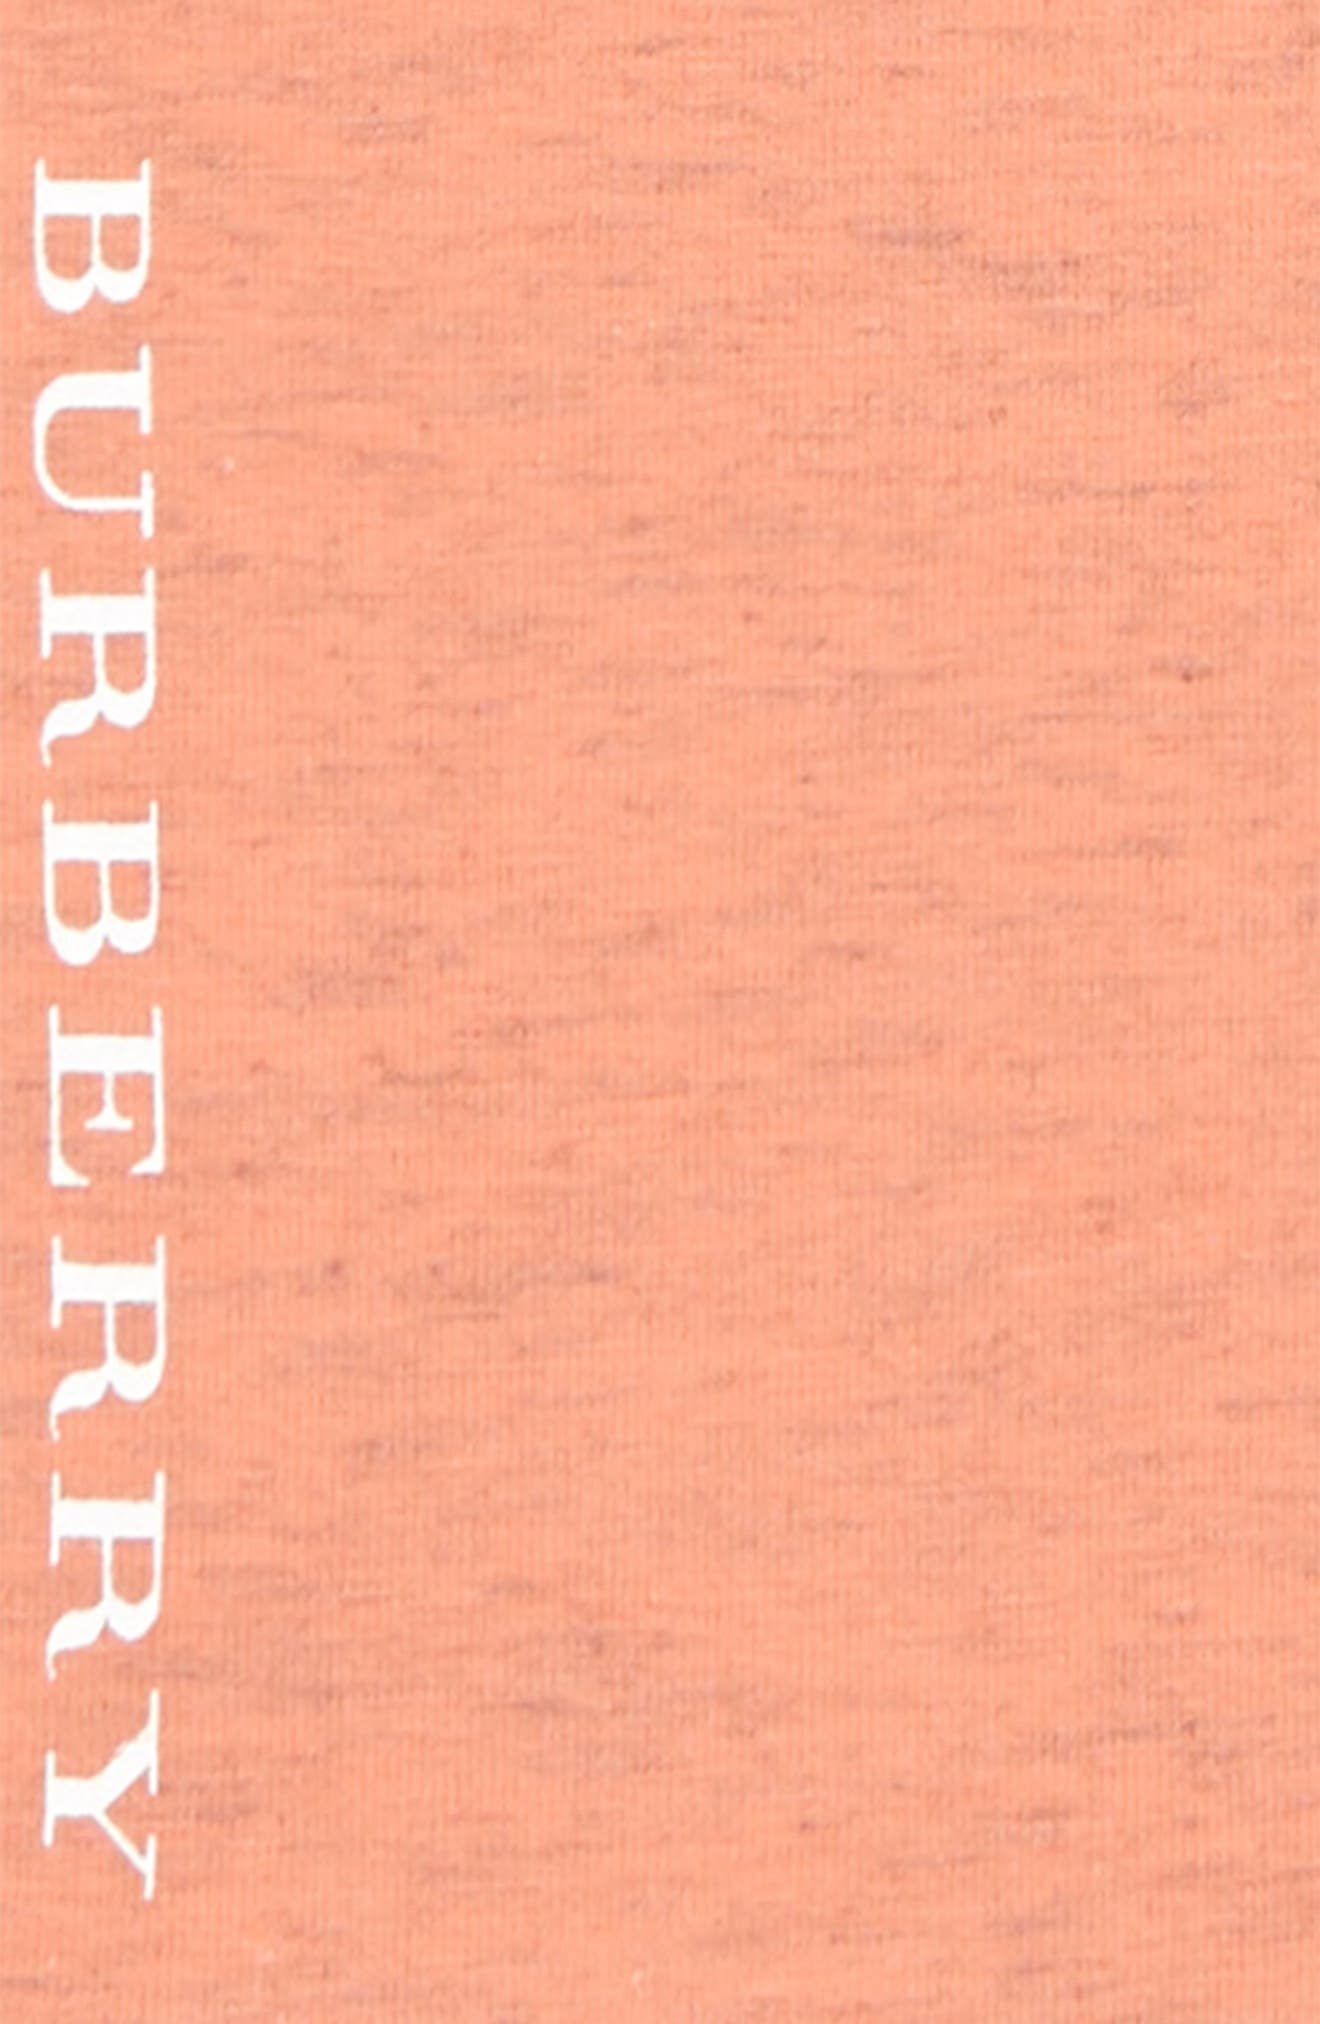 BURBERRY, Penny Logo Leggings, Alternate thumbnail 2, color, PALE PINK